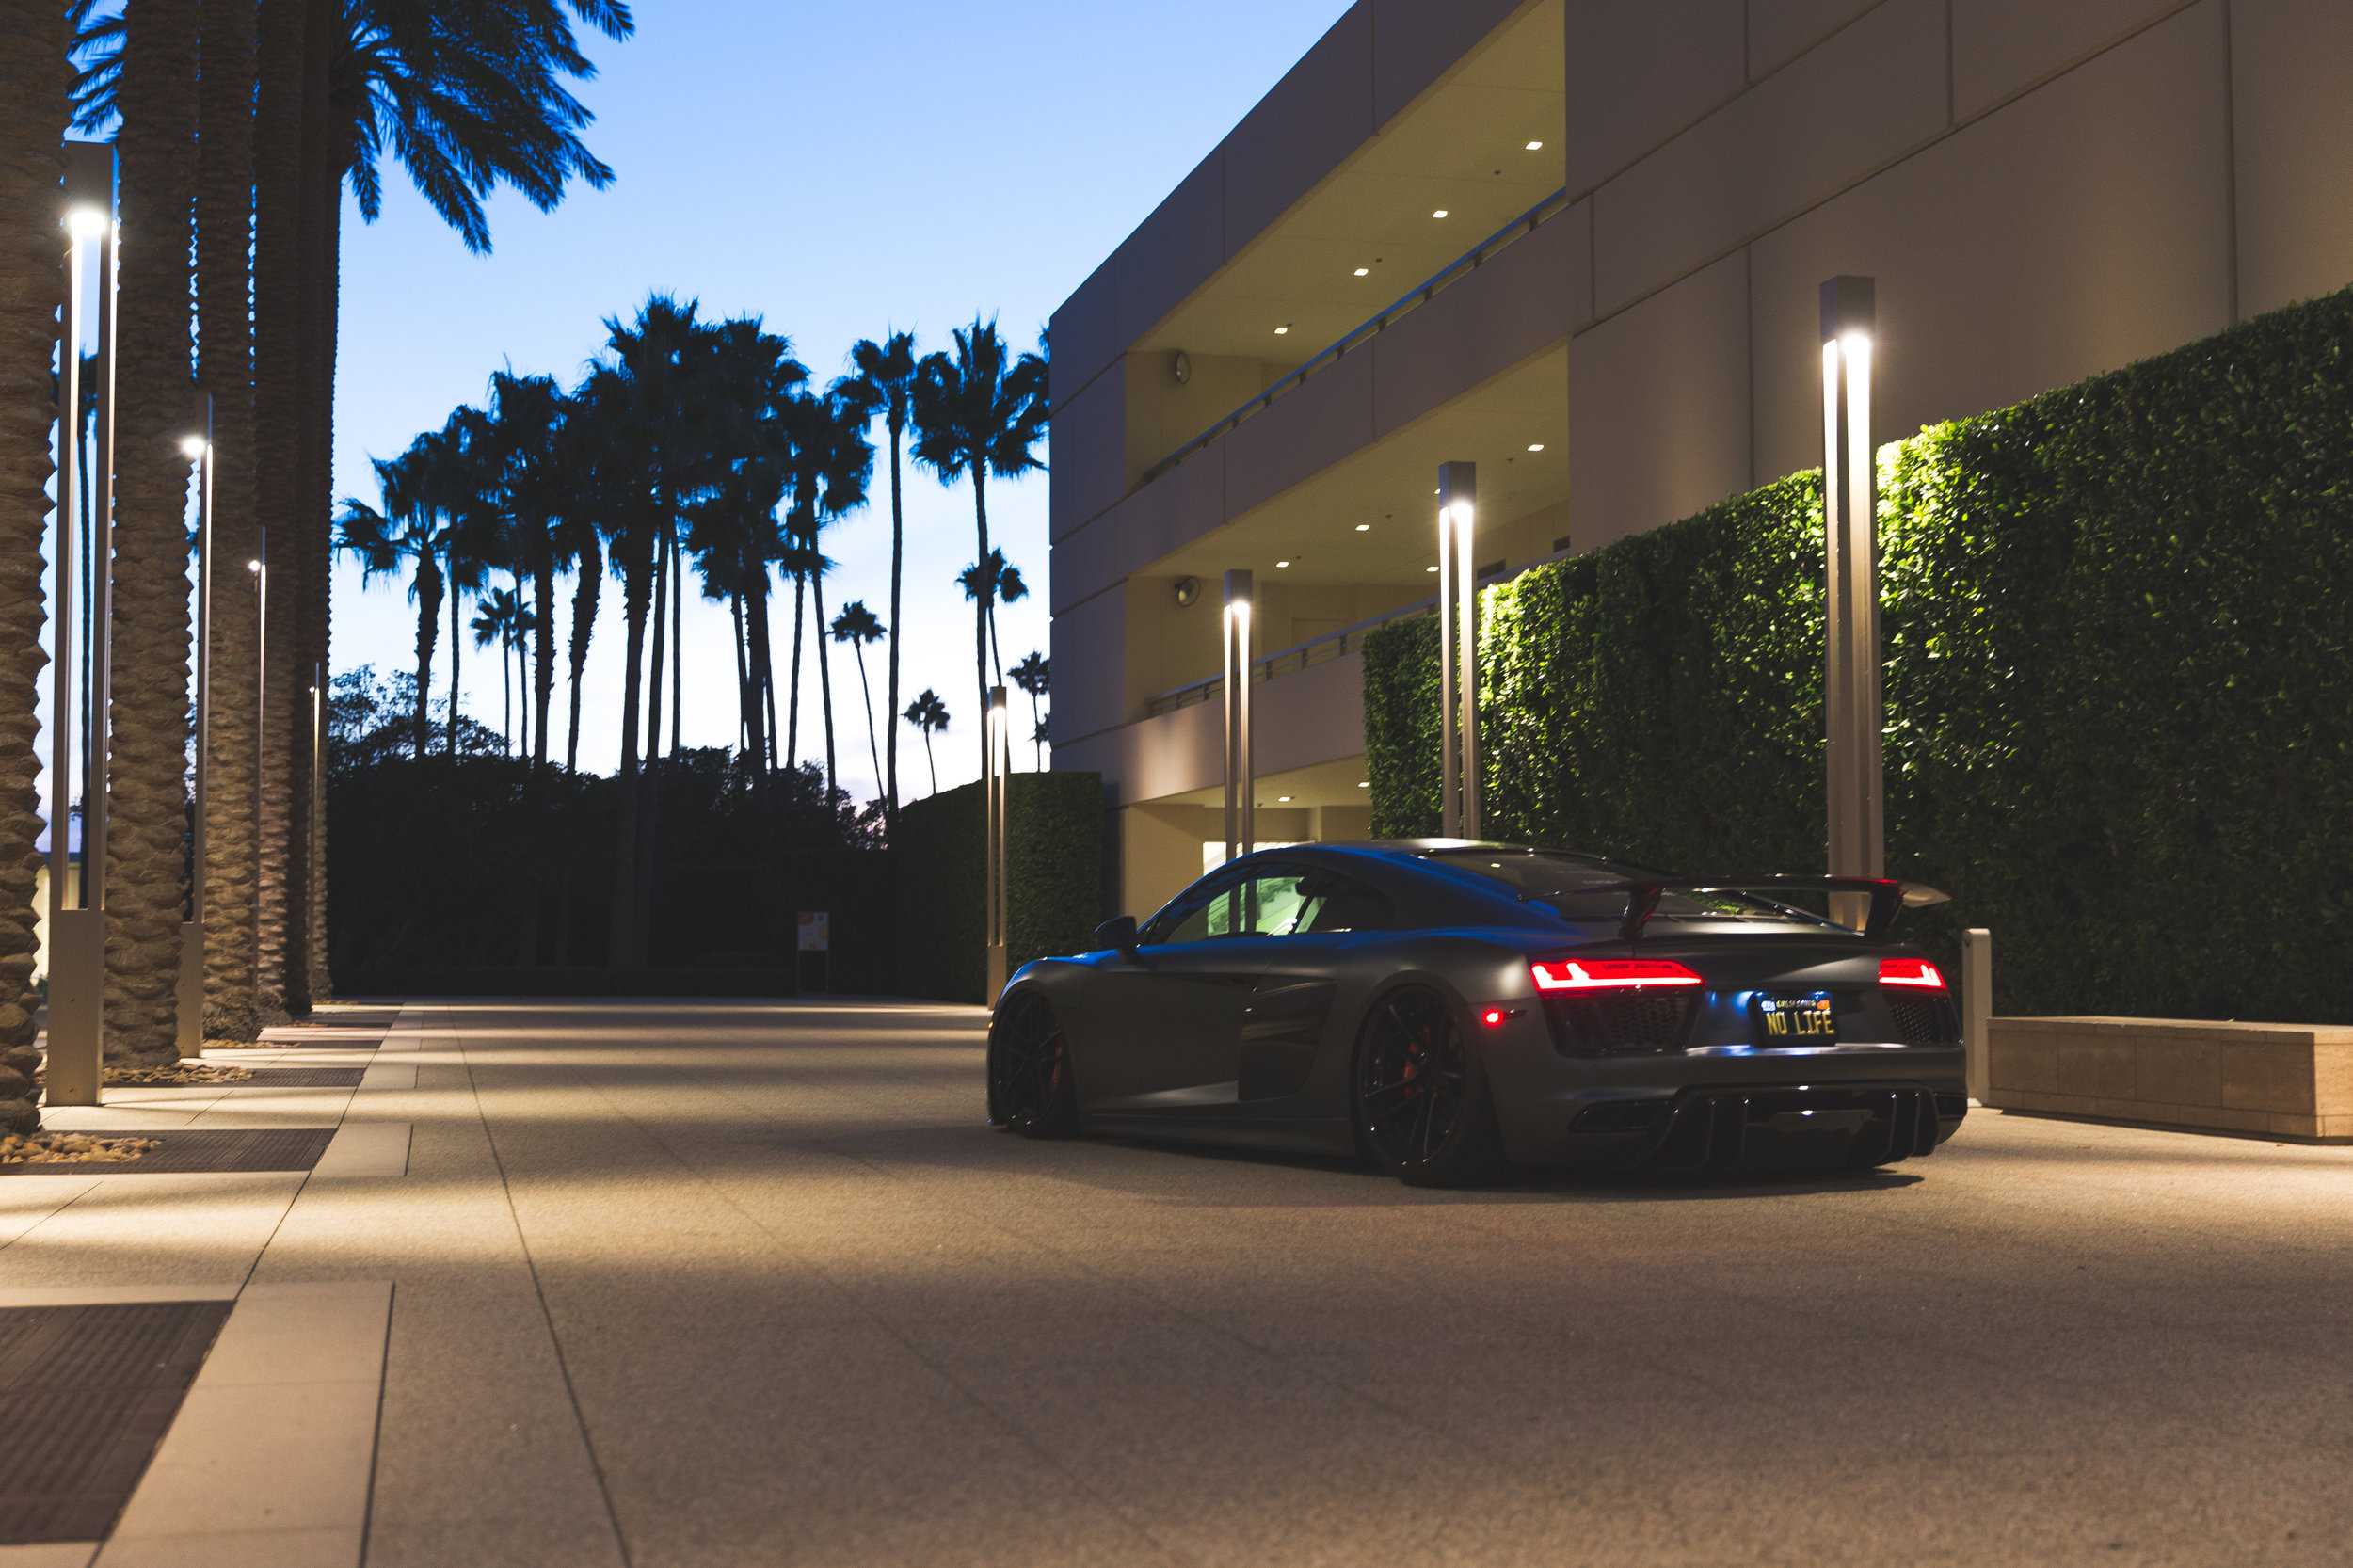 Stay_Driven_Page_R8_Newport-40.jpg